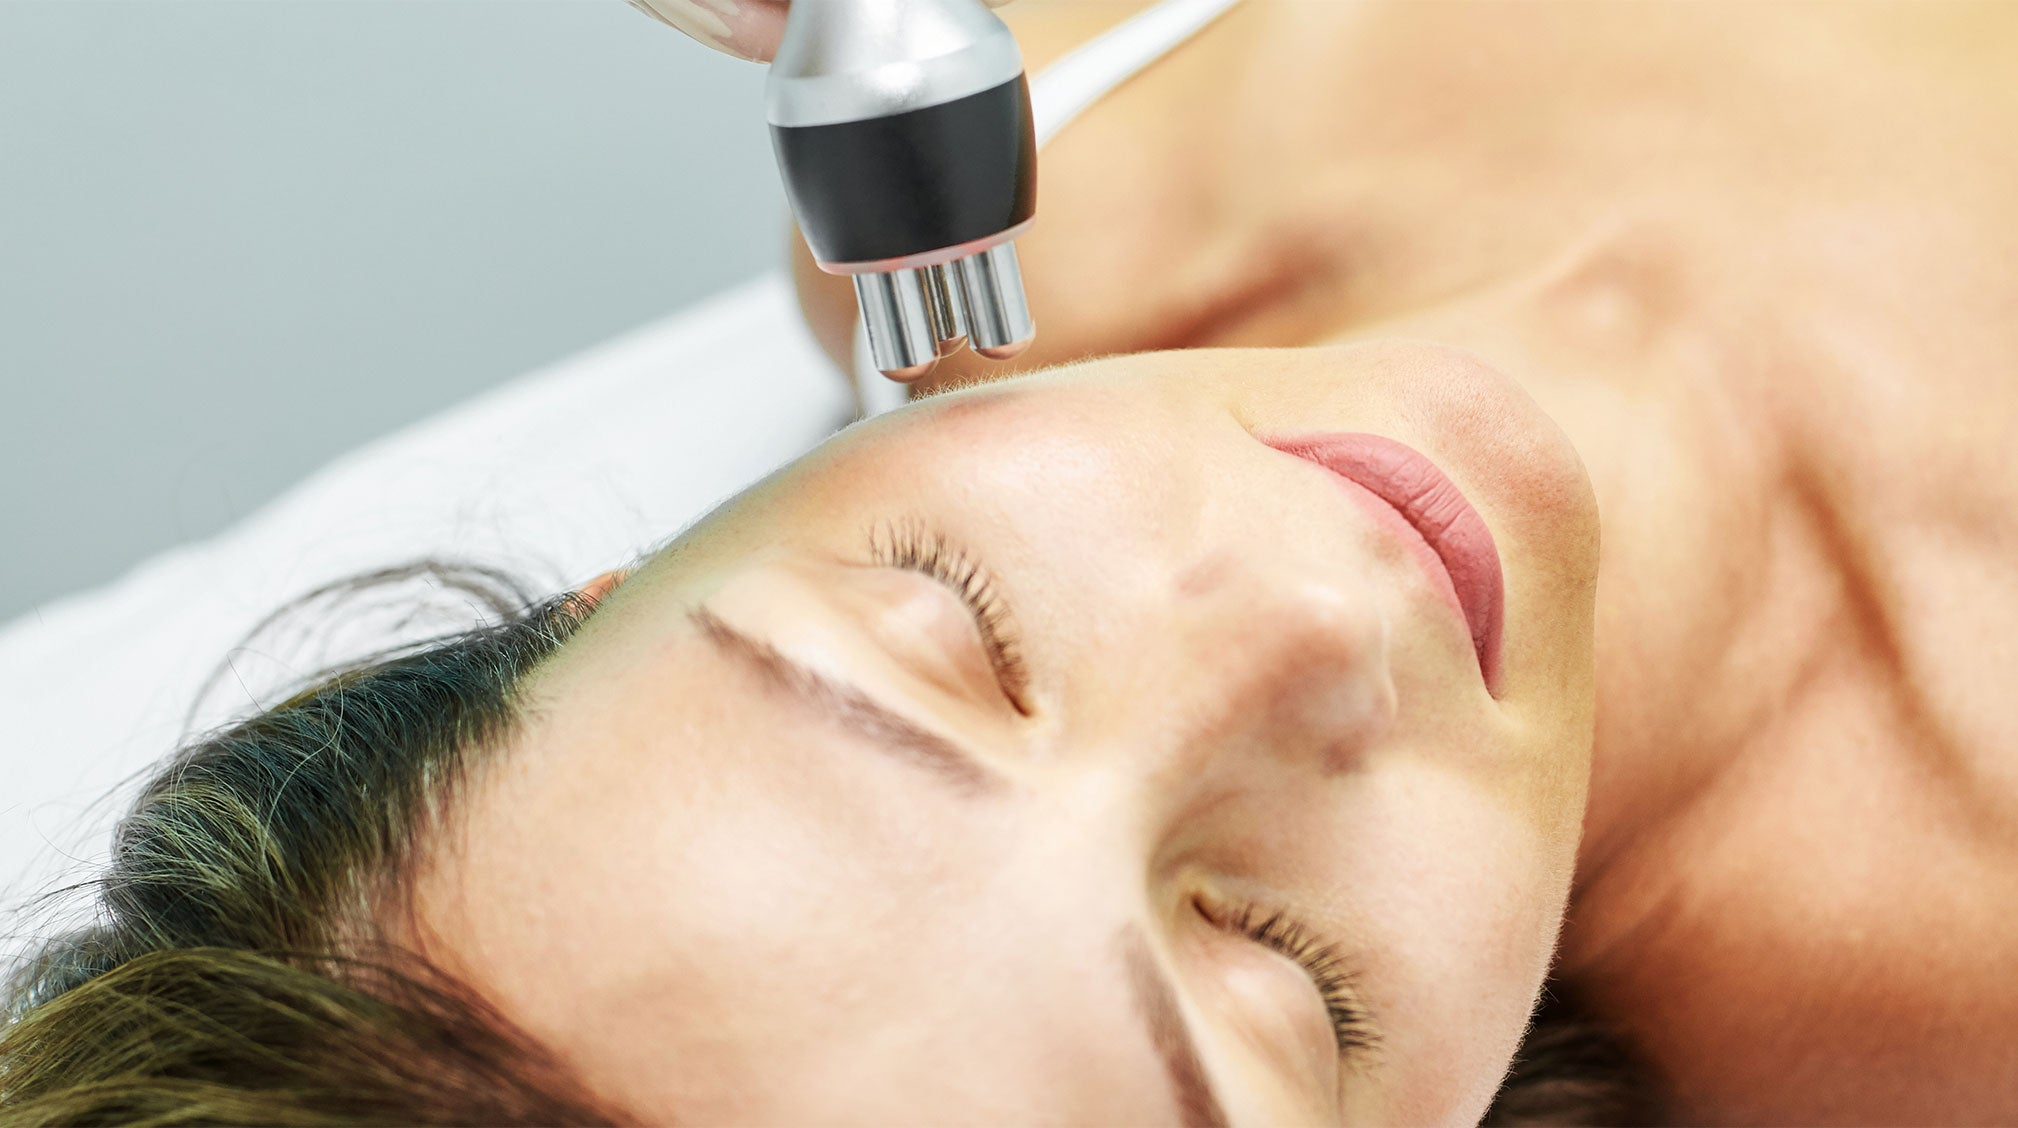 Highlighting Laser Skin Resurfacing: What It Is and What to Expect